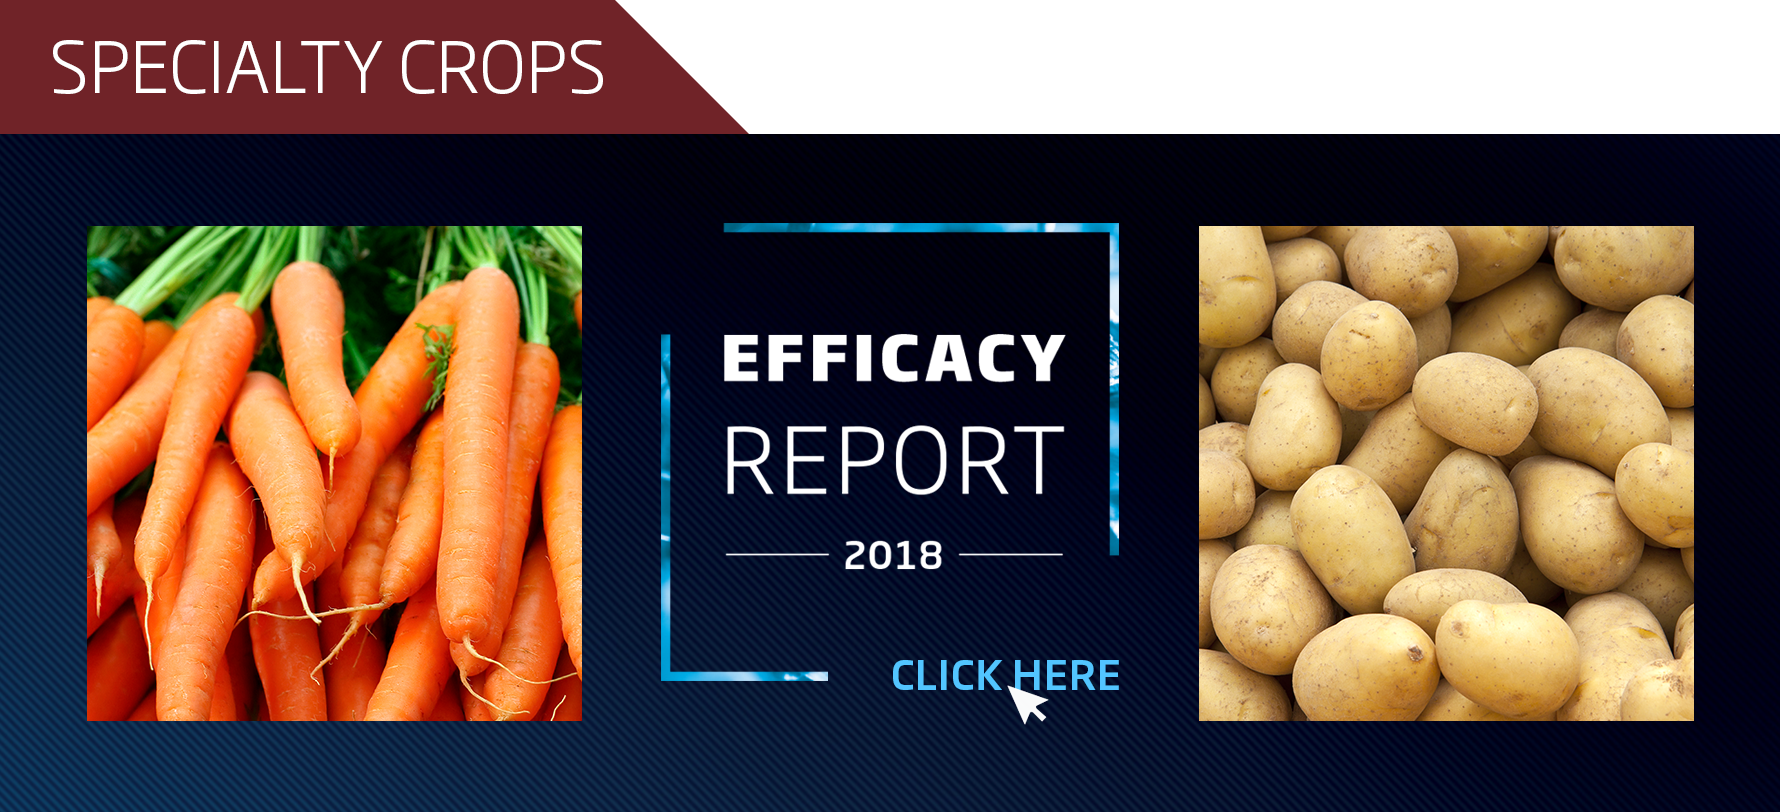 2018 Efficacy Report SPECIALTY CROPS